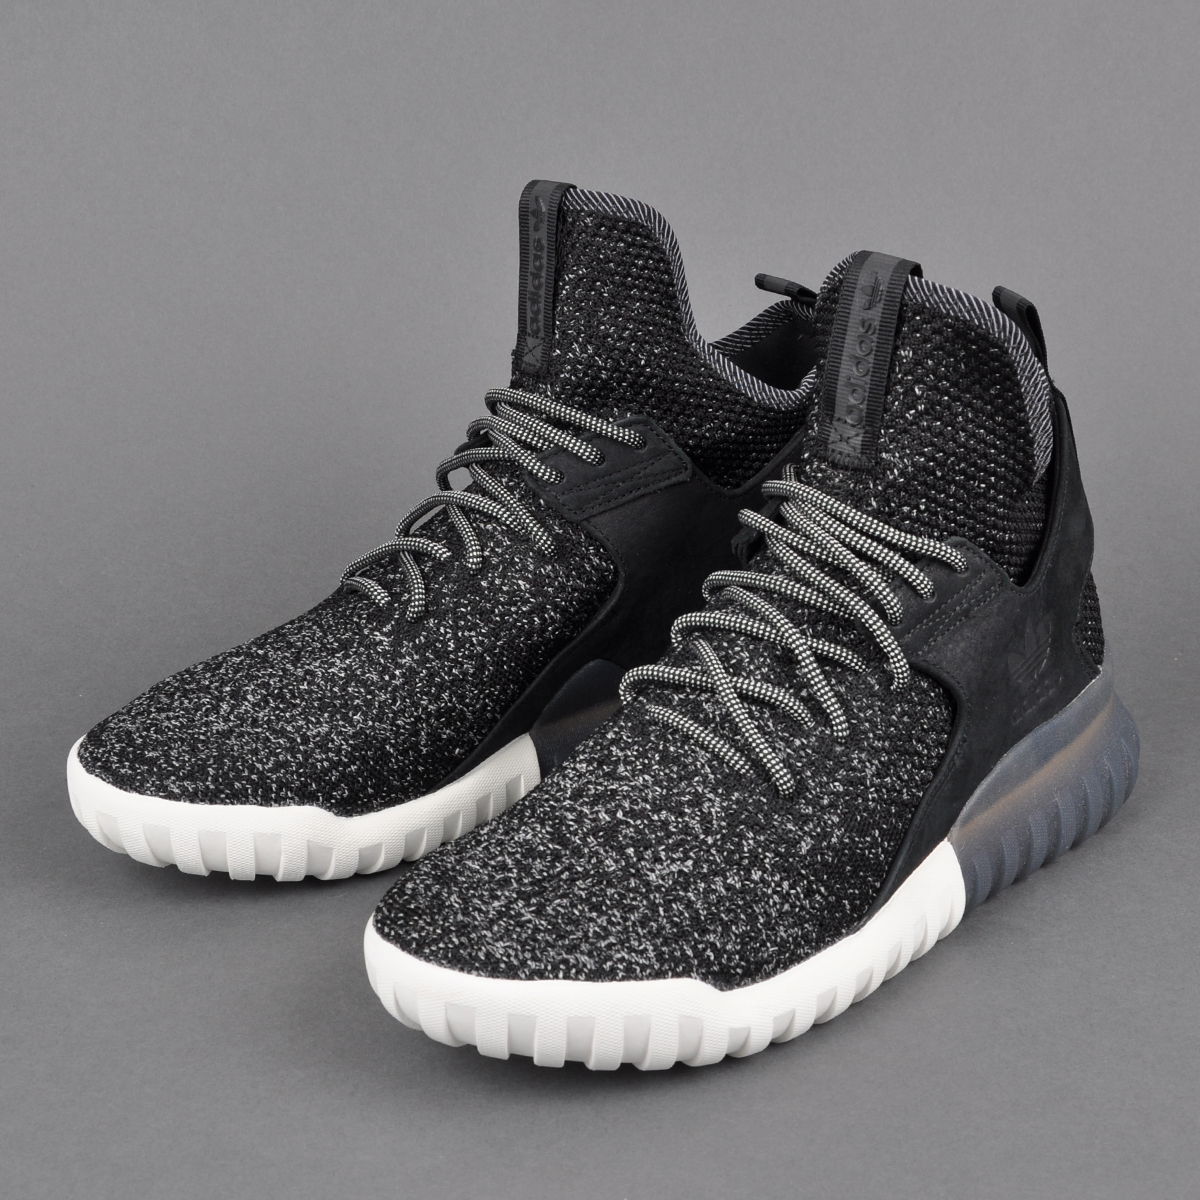 Adidas tubular women sale Jerry N. Weiss